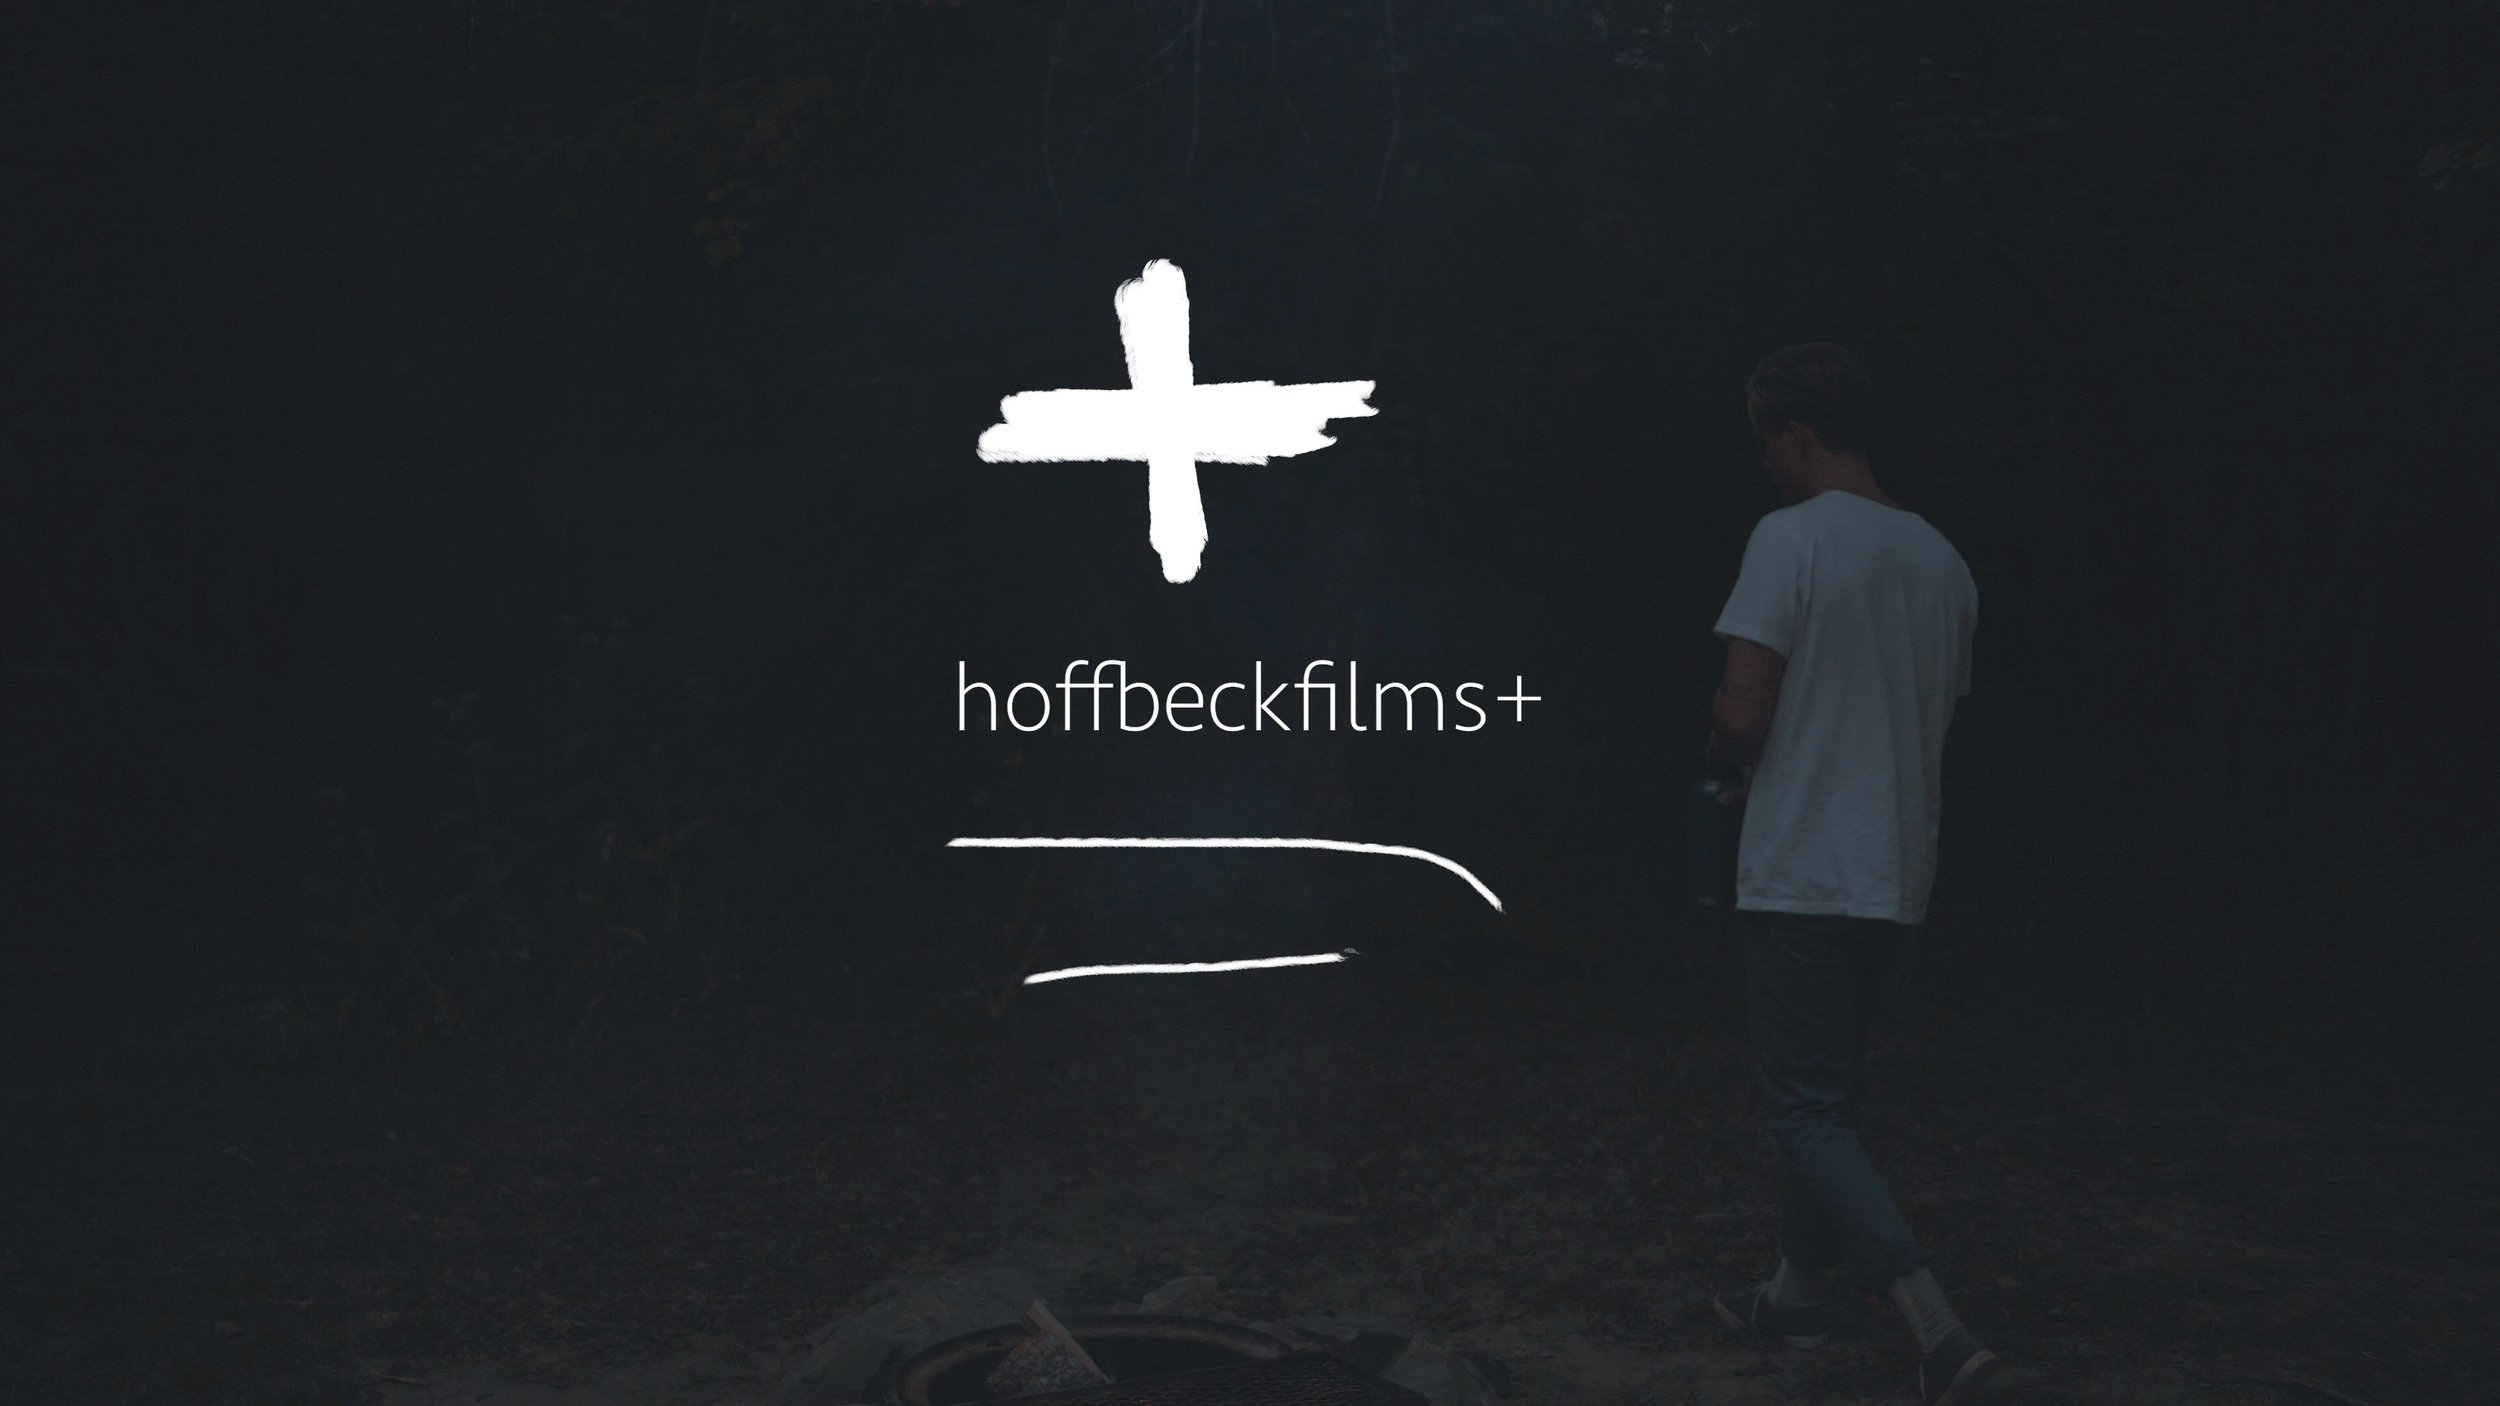 hoffbeckfilms+ - Stock Films and Photos available for purchase at the click of a button.The Easiest ExperienceFilms and photos that are perfect for the small business owner, the instagram lover and event planner.